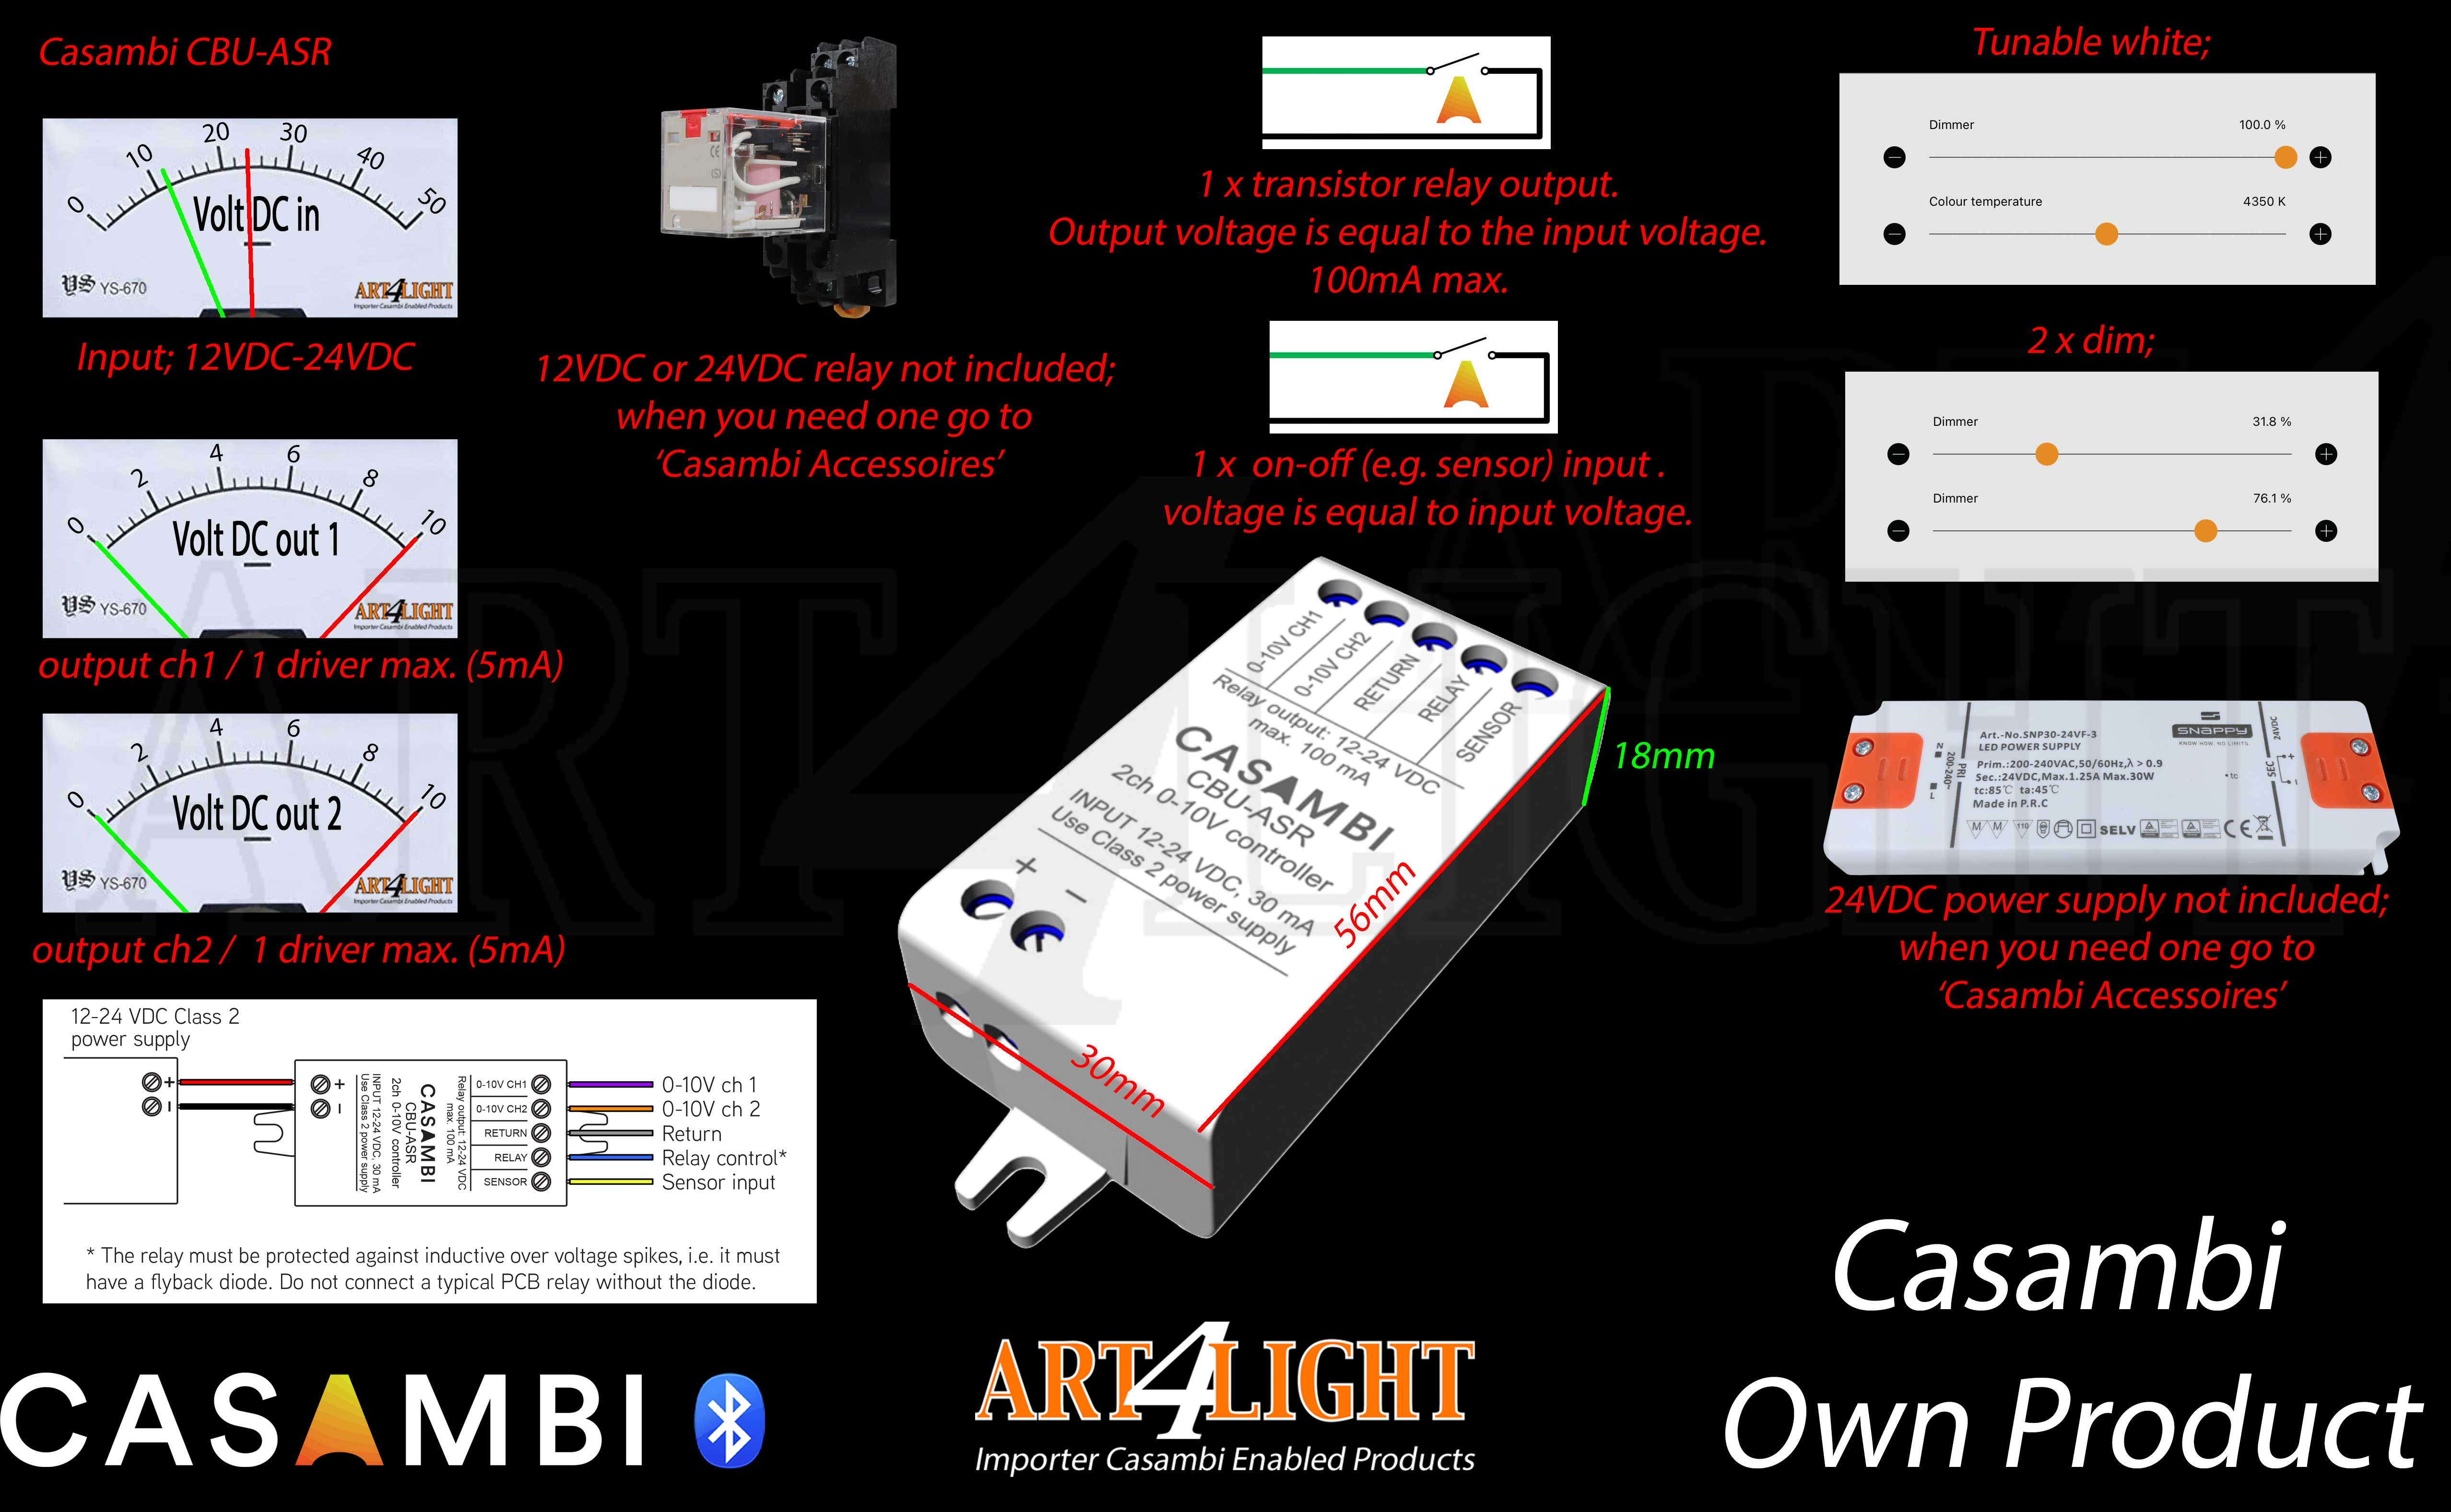 OVERVIEW OF CONFIGURATION  CASAMBI CBU-ASR